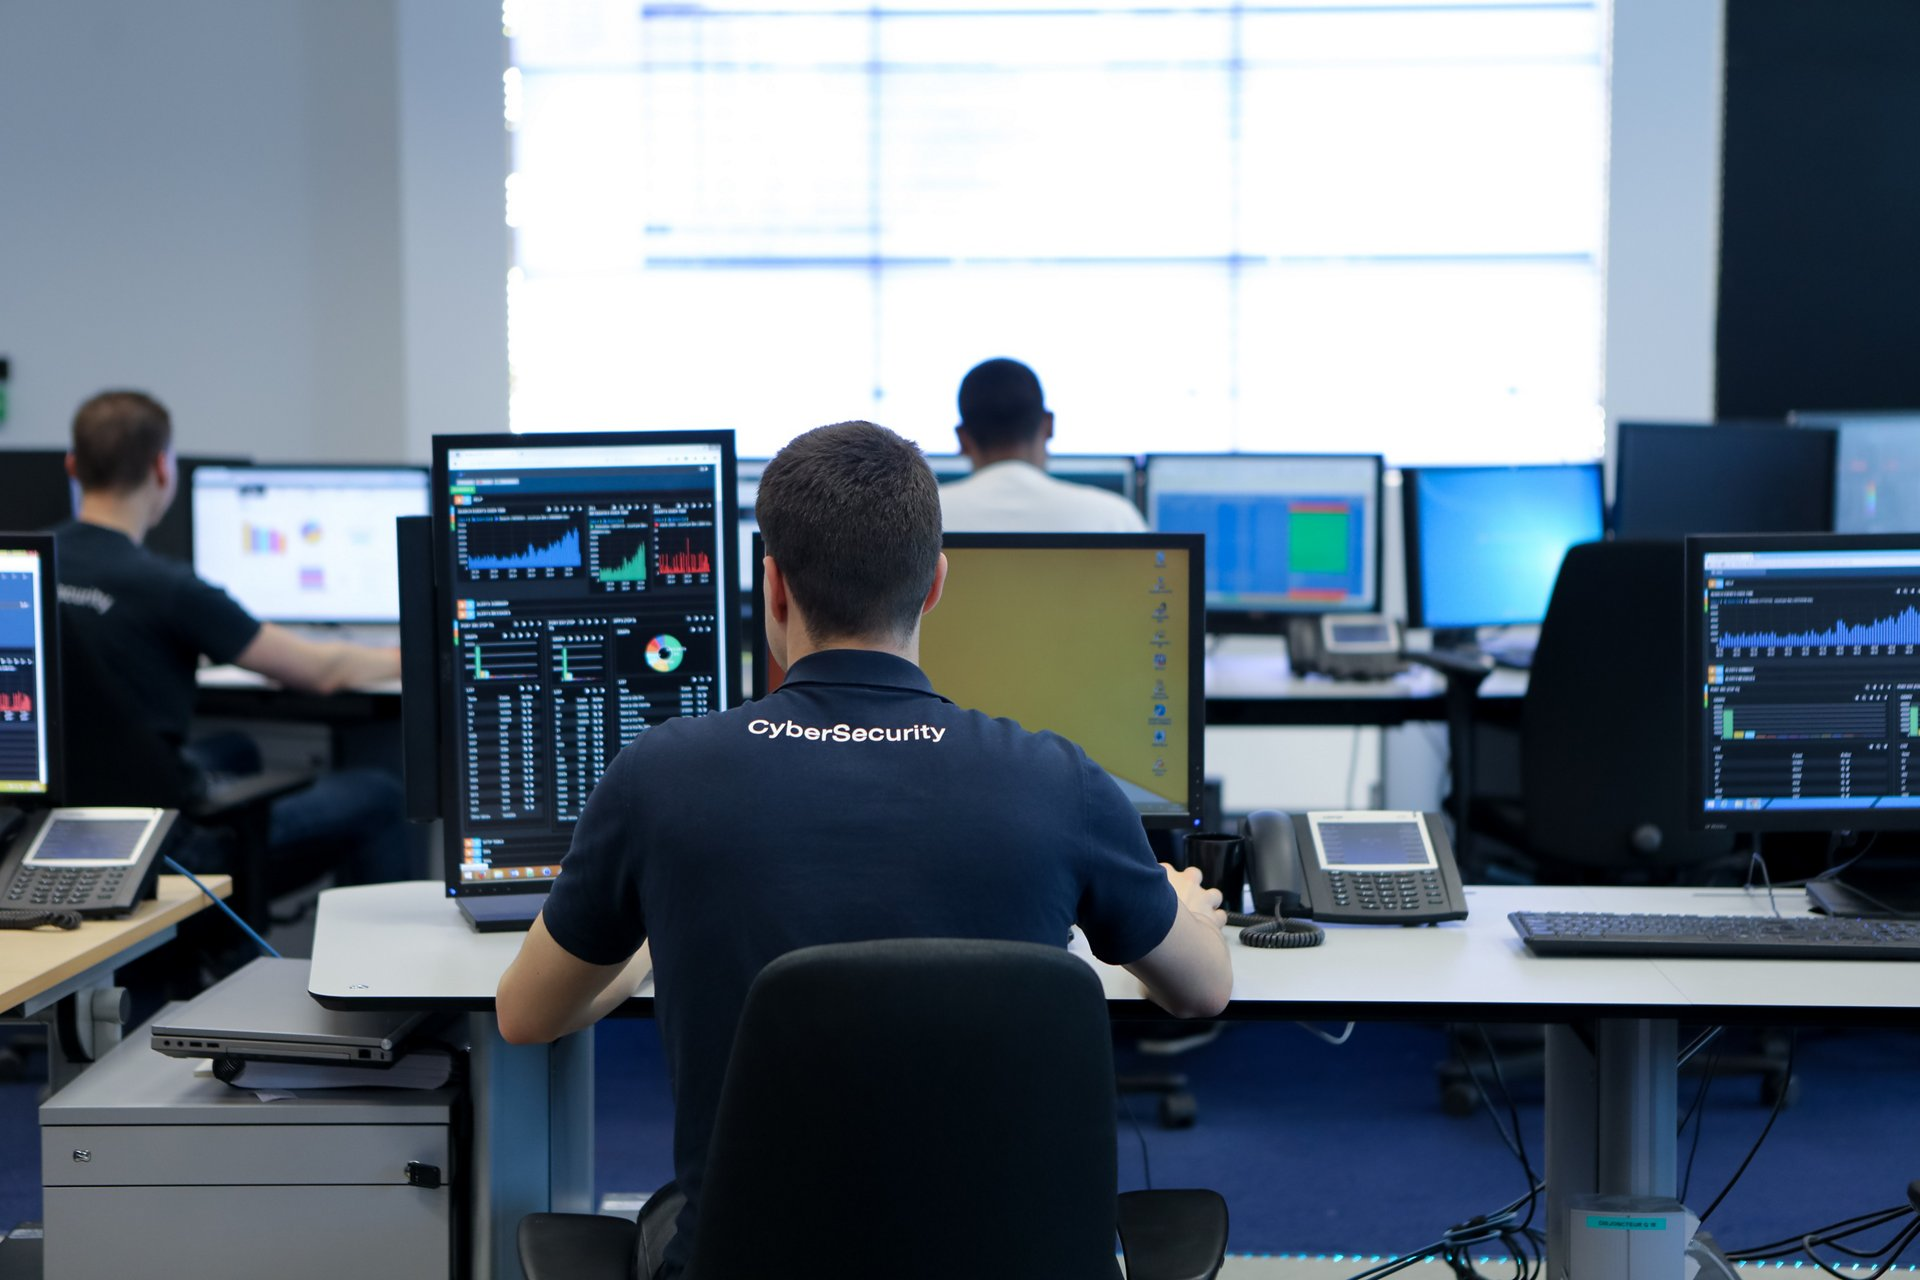 Airbus CyberSecurity: 